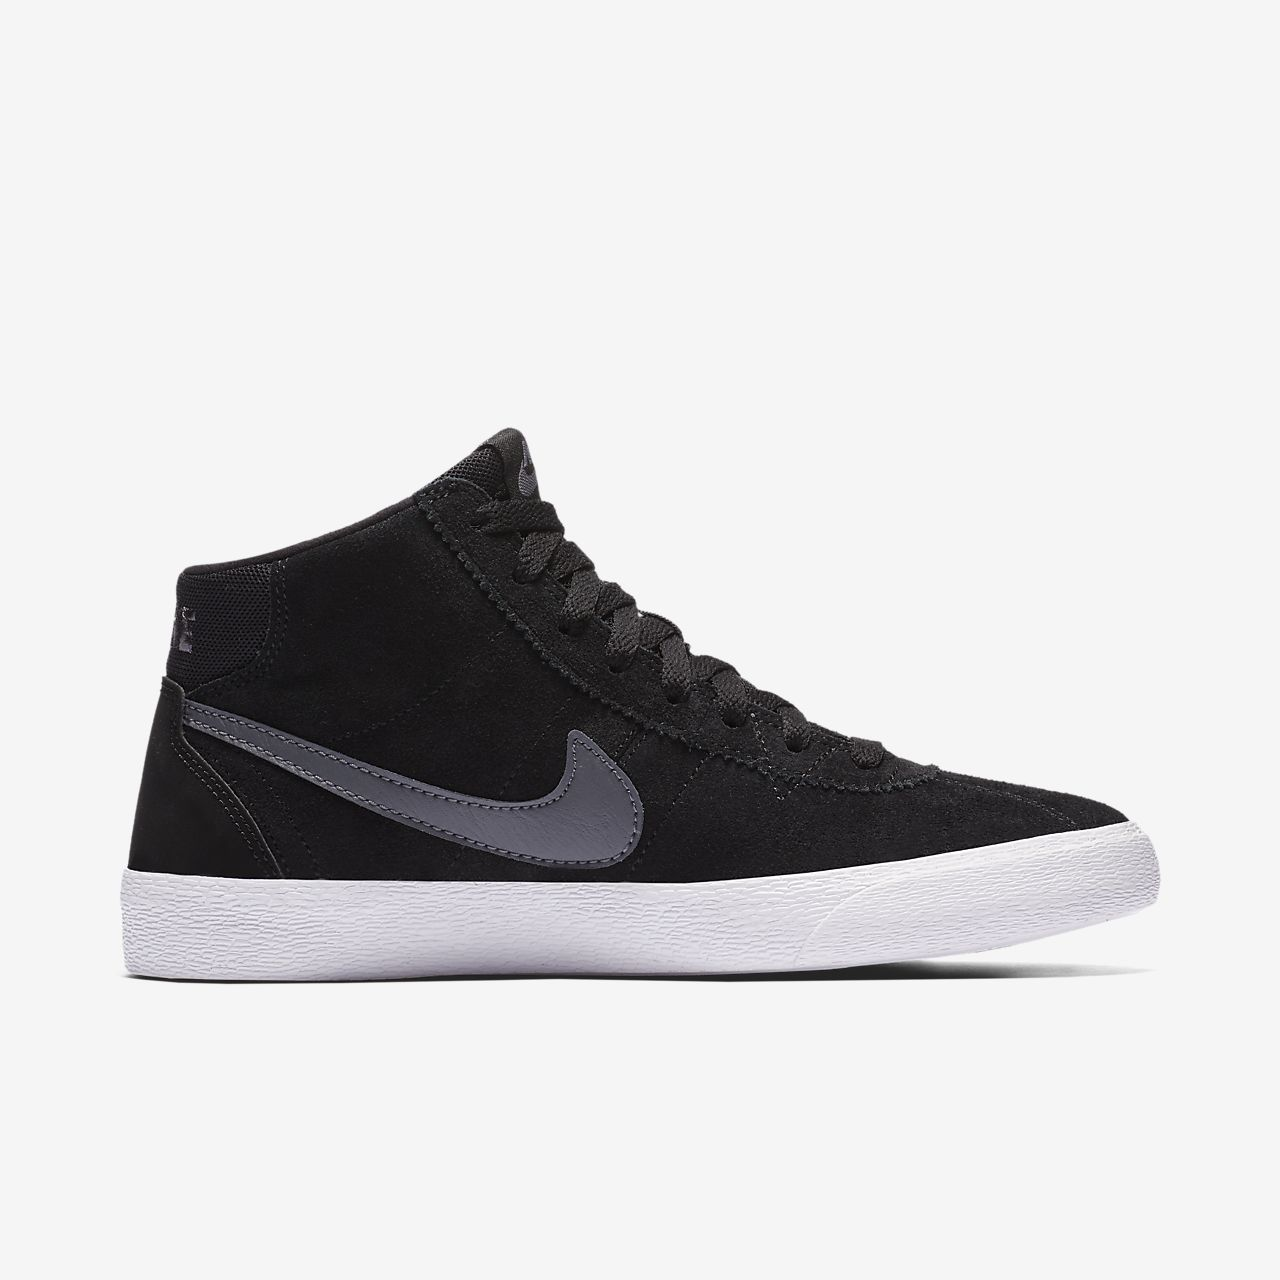 346d0da24e3d Low Resolution Nike SB Bruin High Women s Skateboarding Shoe Nike SB Bruin  High Women s Skateboarding Shoe